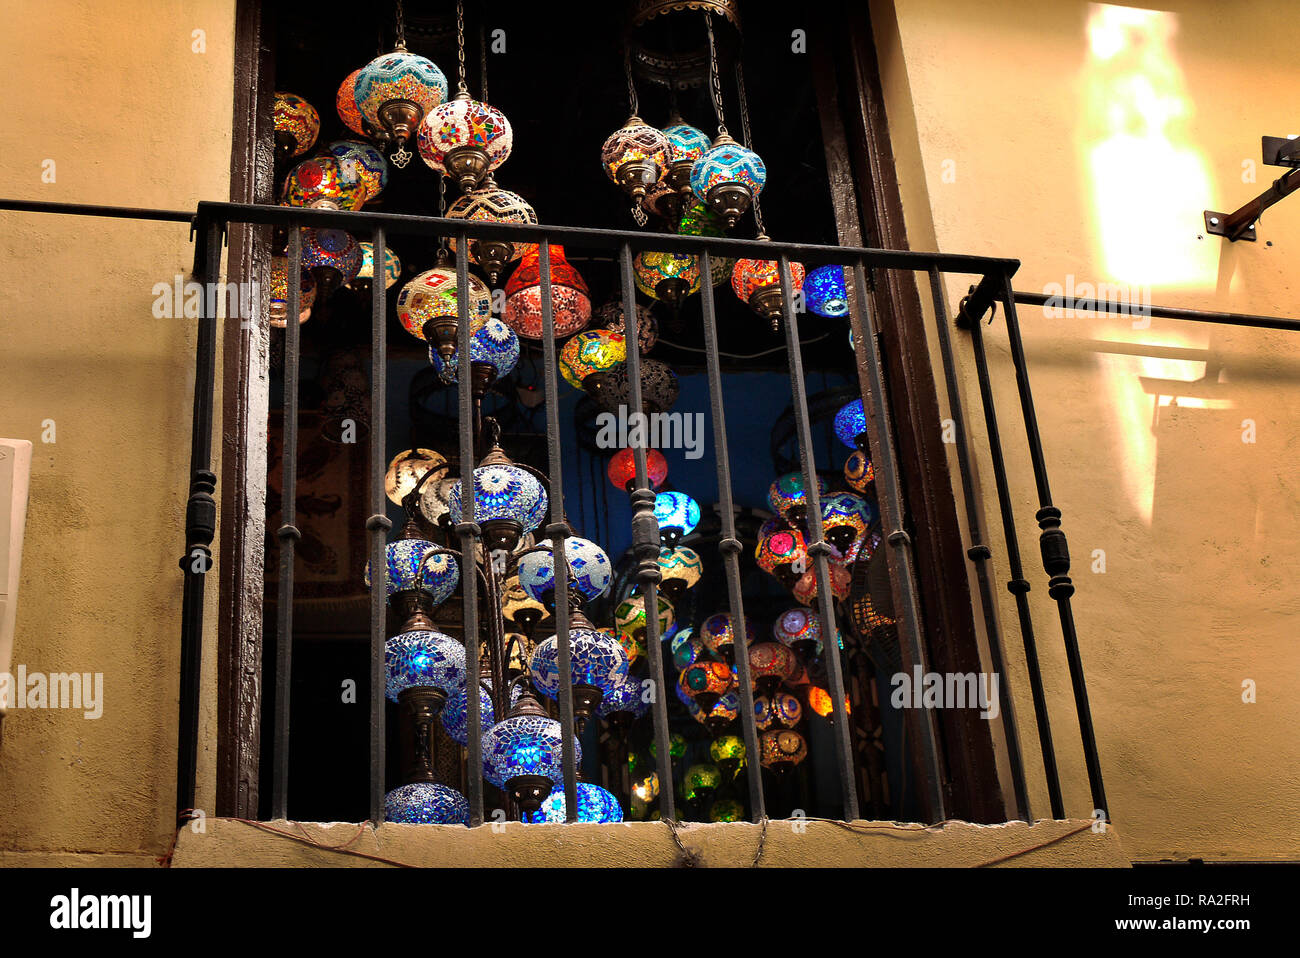 Moroccan lamps on sale in Granada, Spain. - Stock Image